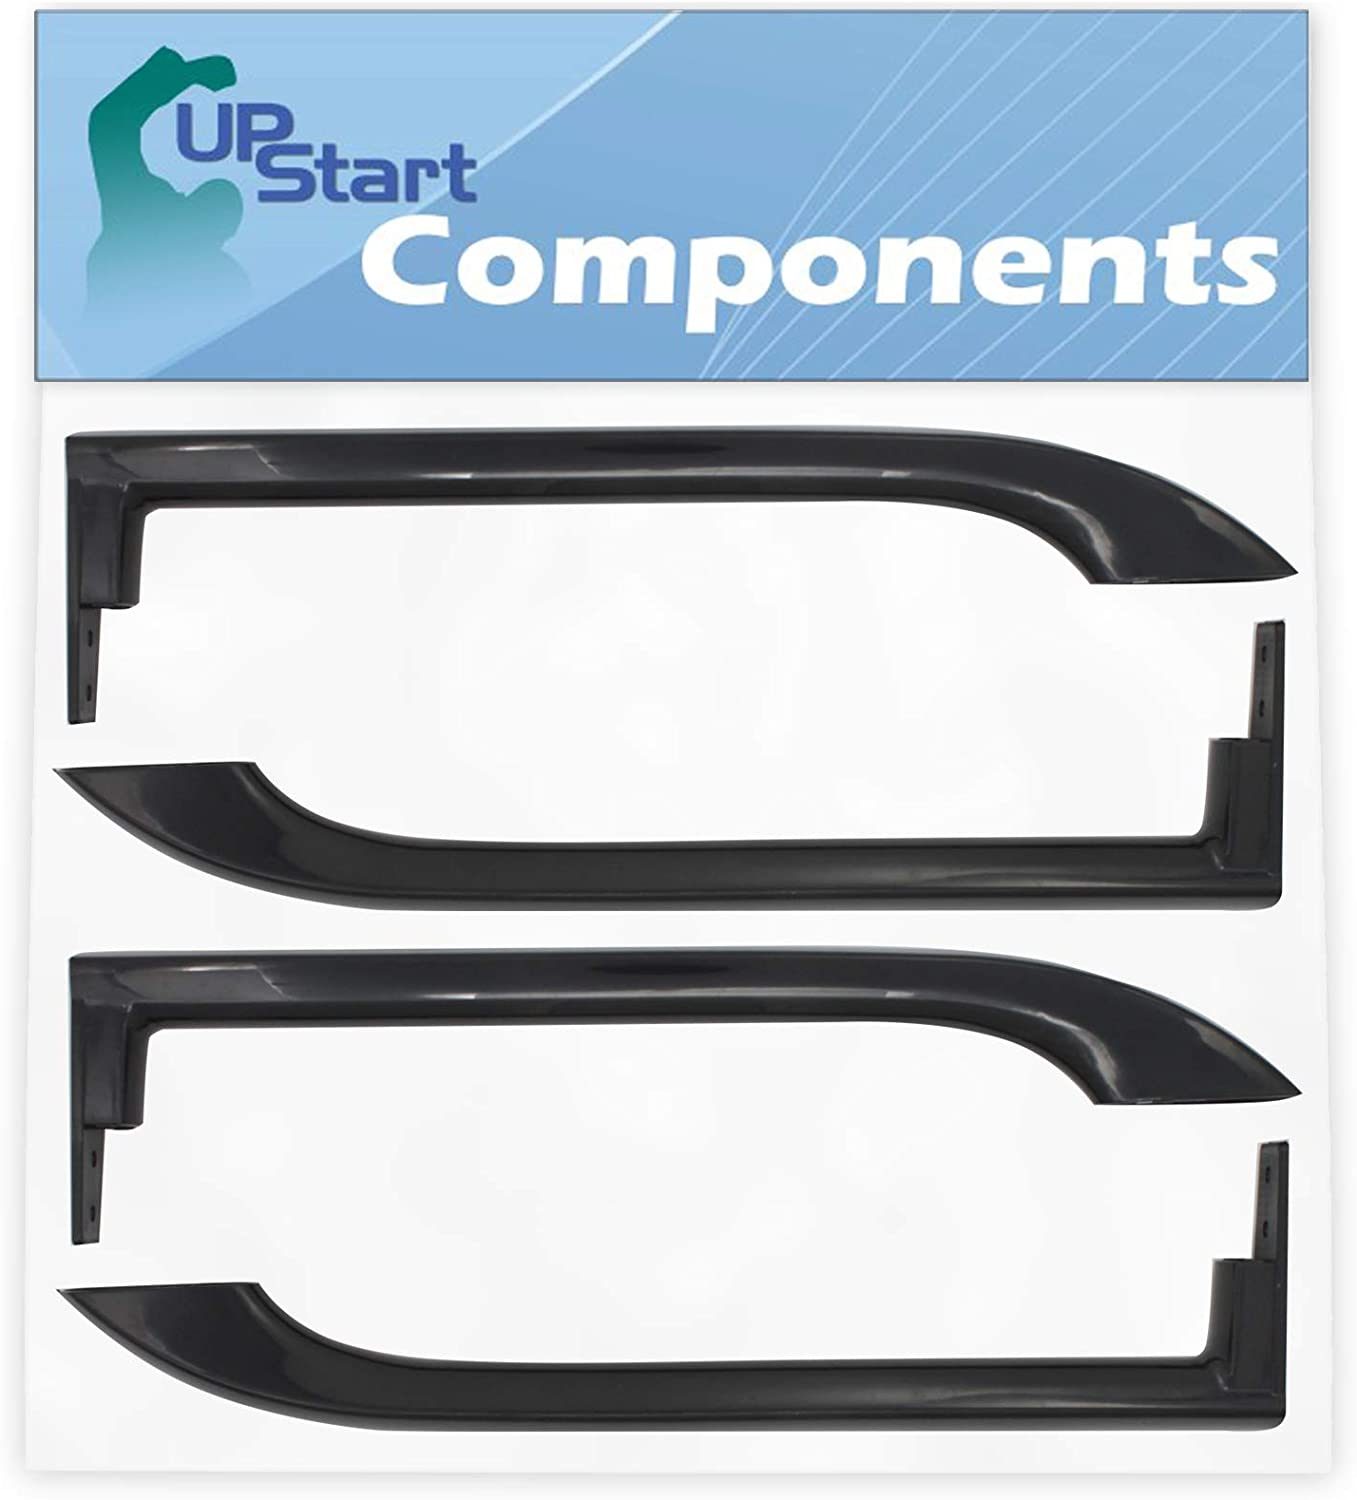 Today's security only 2-Pack 5304506471 Refrigerator Door Replacement for Frigi Handle